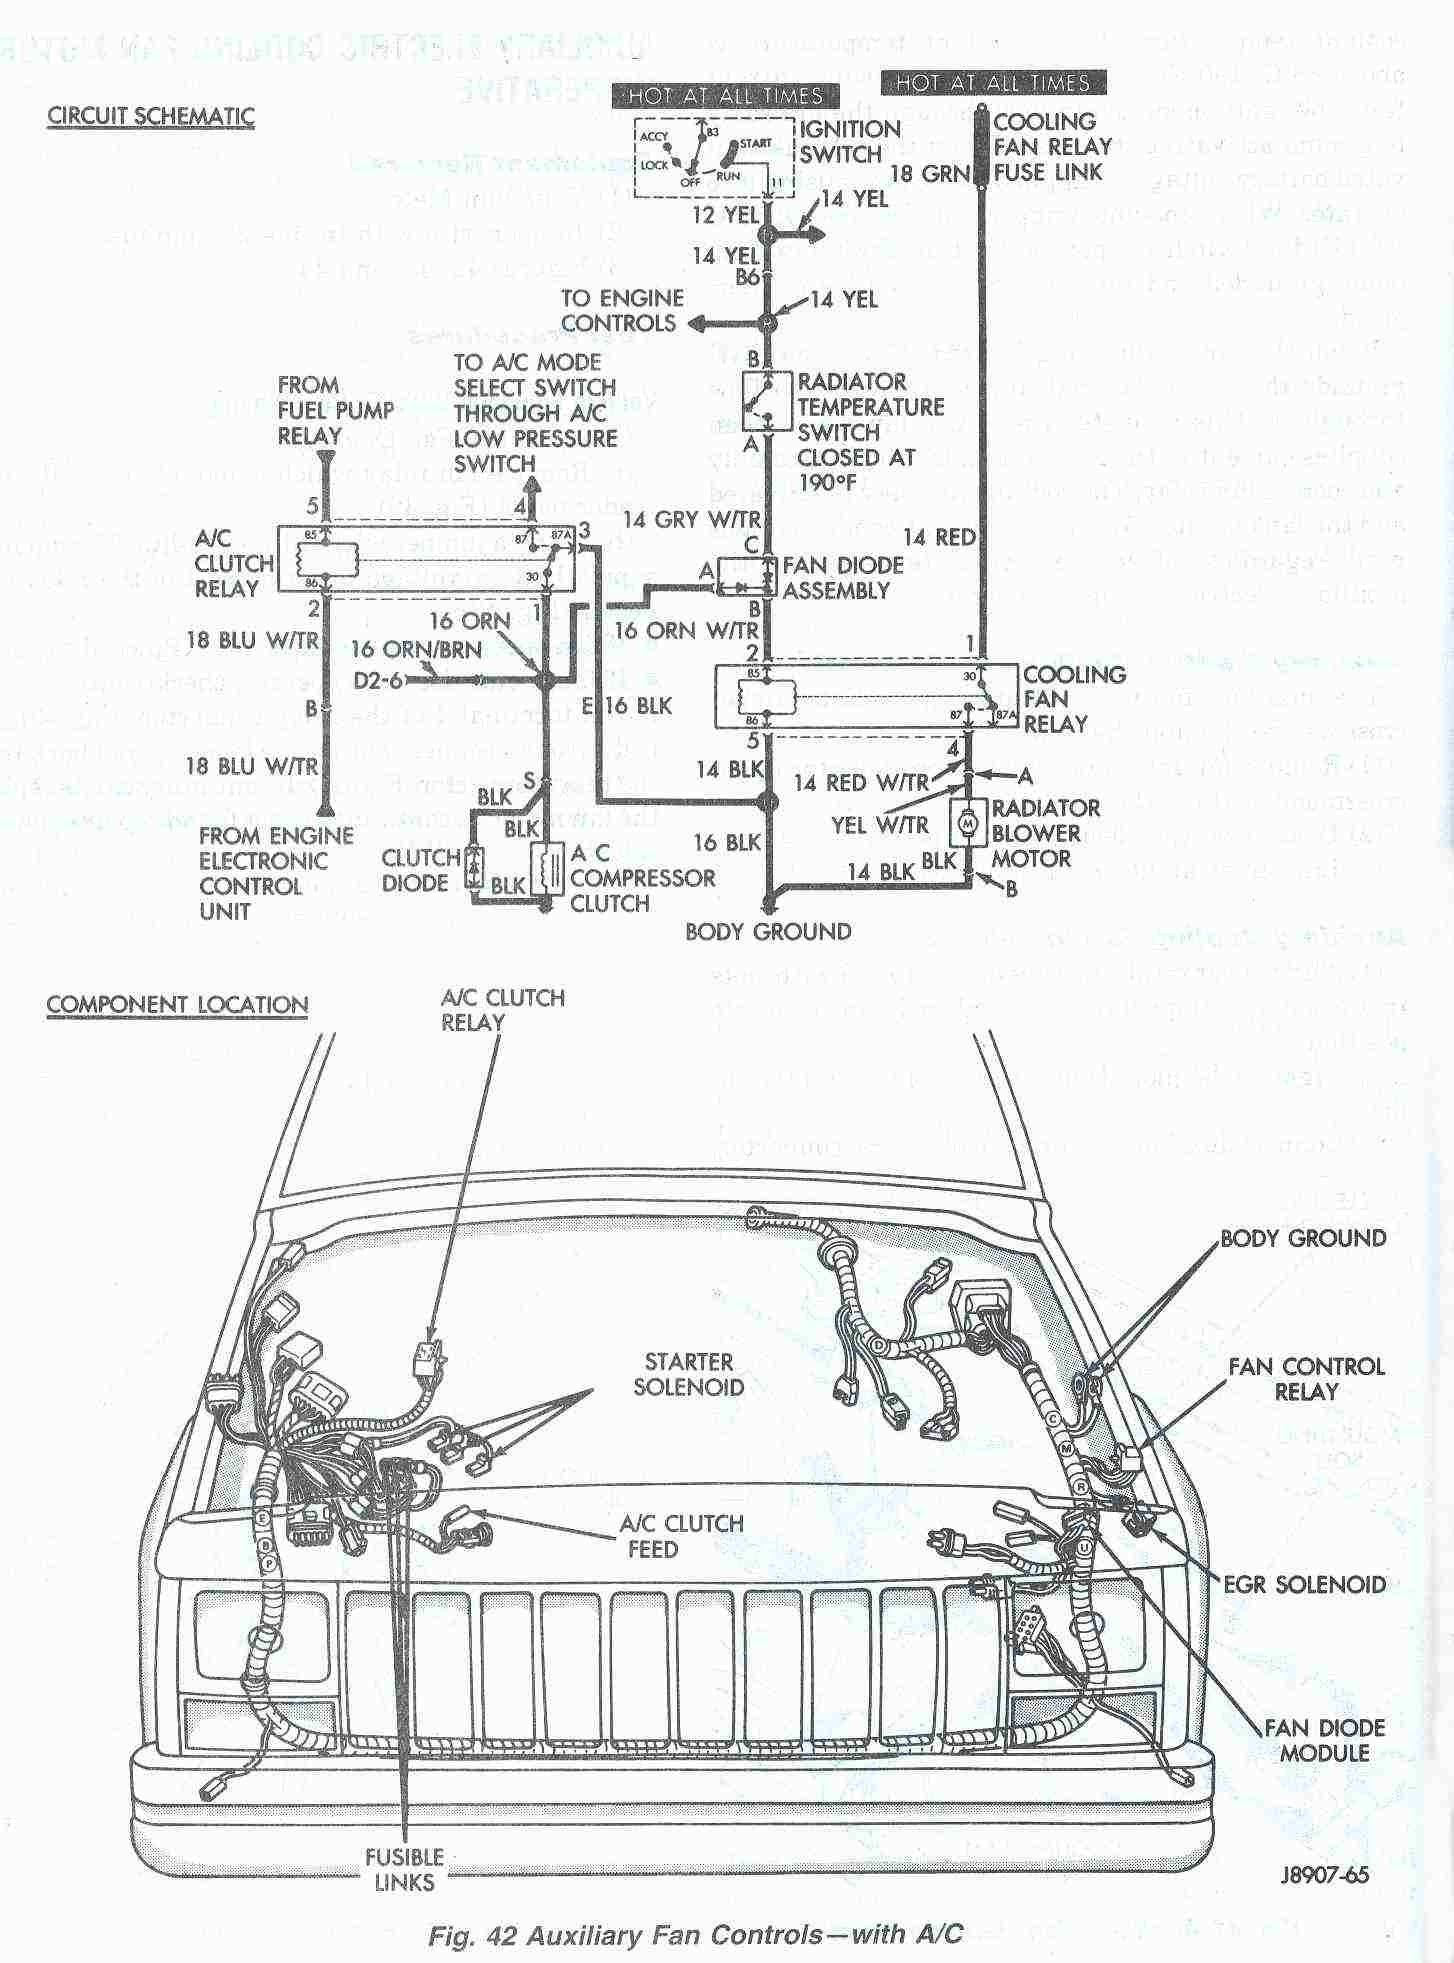 New 1998 Jeep Cherokee Headlight Wiring Diagram Jeep Grand Cherokee Jeep Cherokee Jeep Cherokee Sport